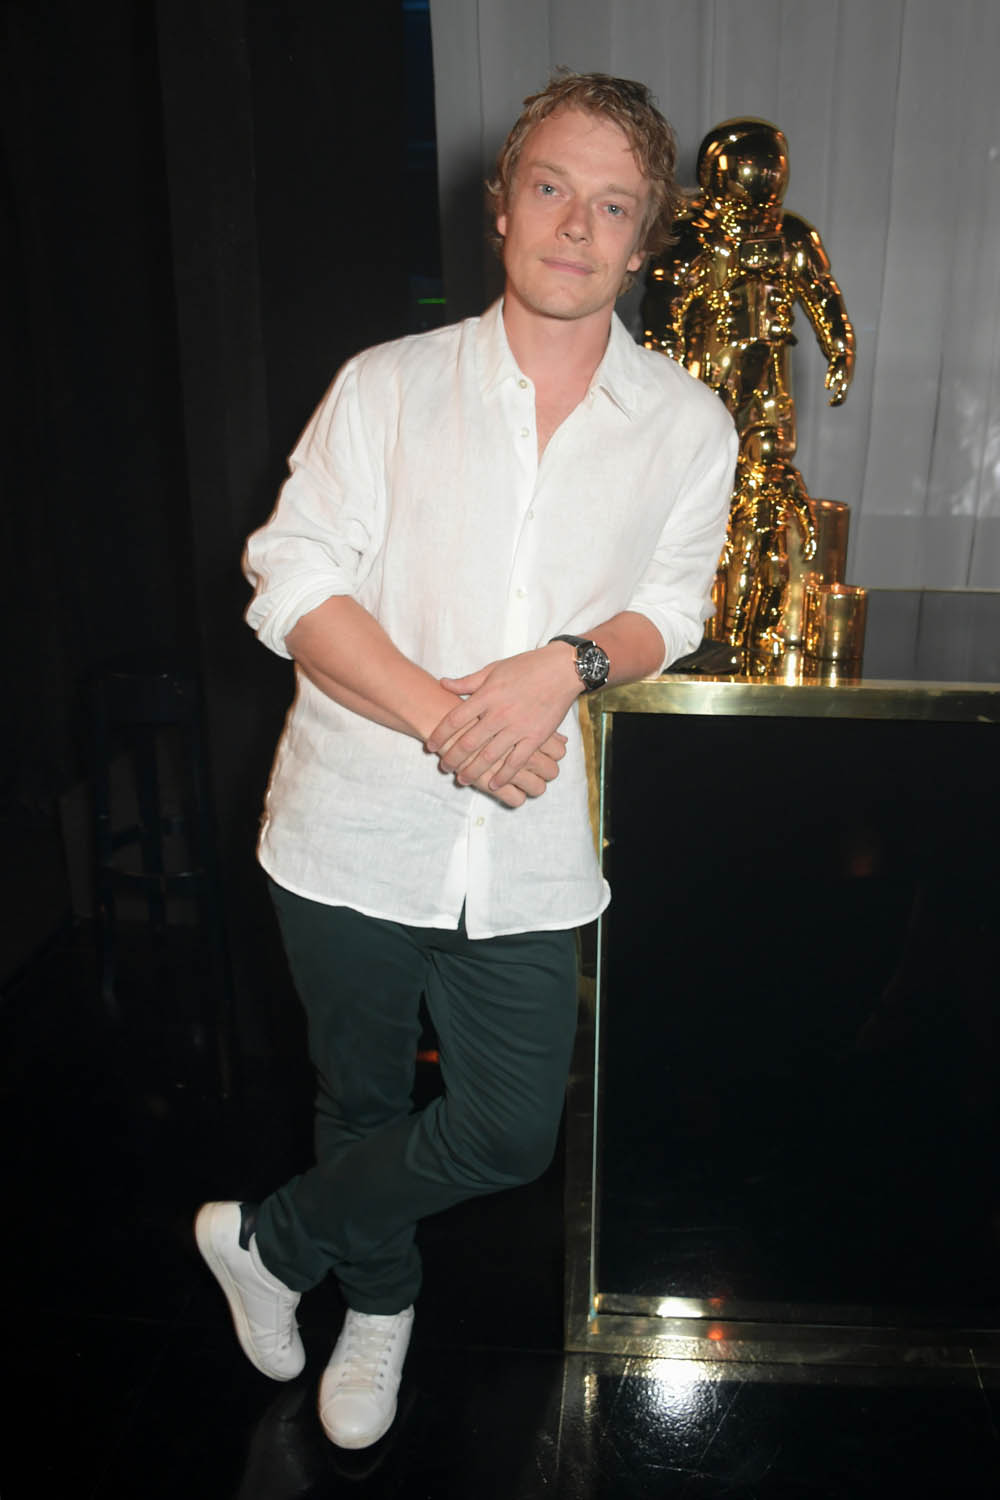 LONDON, ENGLAND - JULY 11: Alfie Allen attends an OMEGA dinner celebrating the 50th anniversary of the Moon Landing at Television Centre on July 11, 2019 in London, England. (Photo by David M. Benett/Dave Benett/Getty Images for OMEGA)